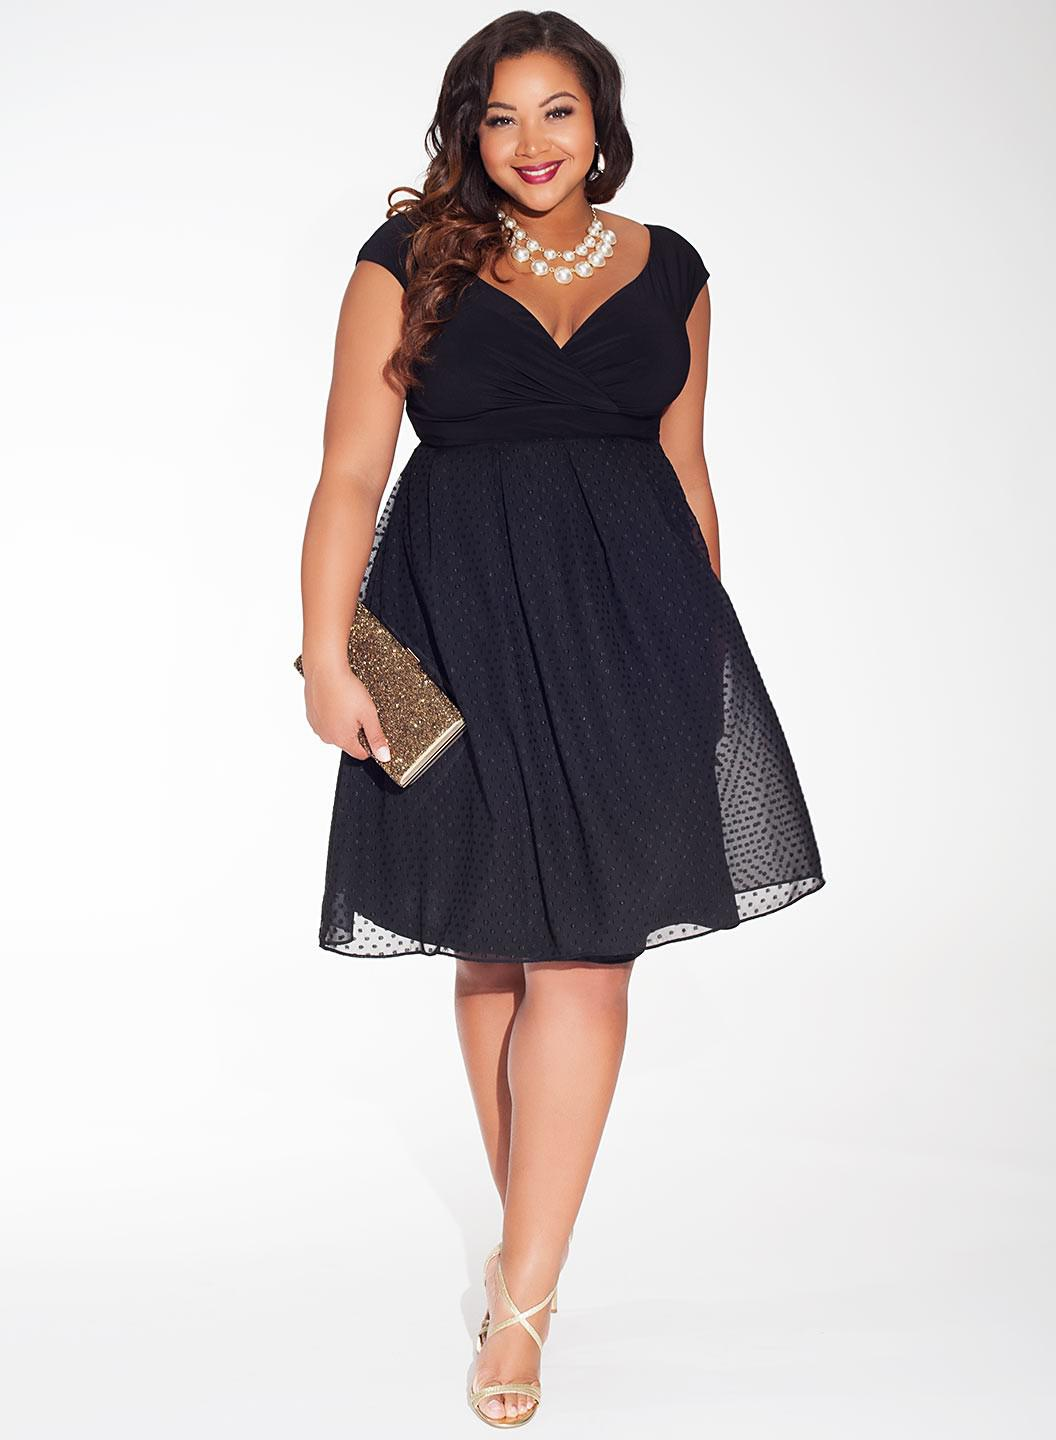 Plus Size Formal Party Dresses Cheap | RLDM